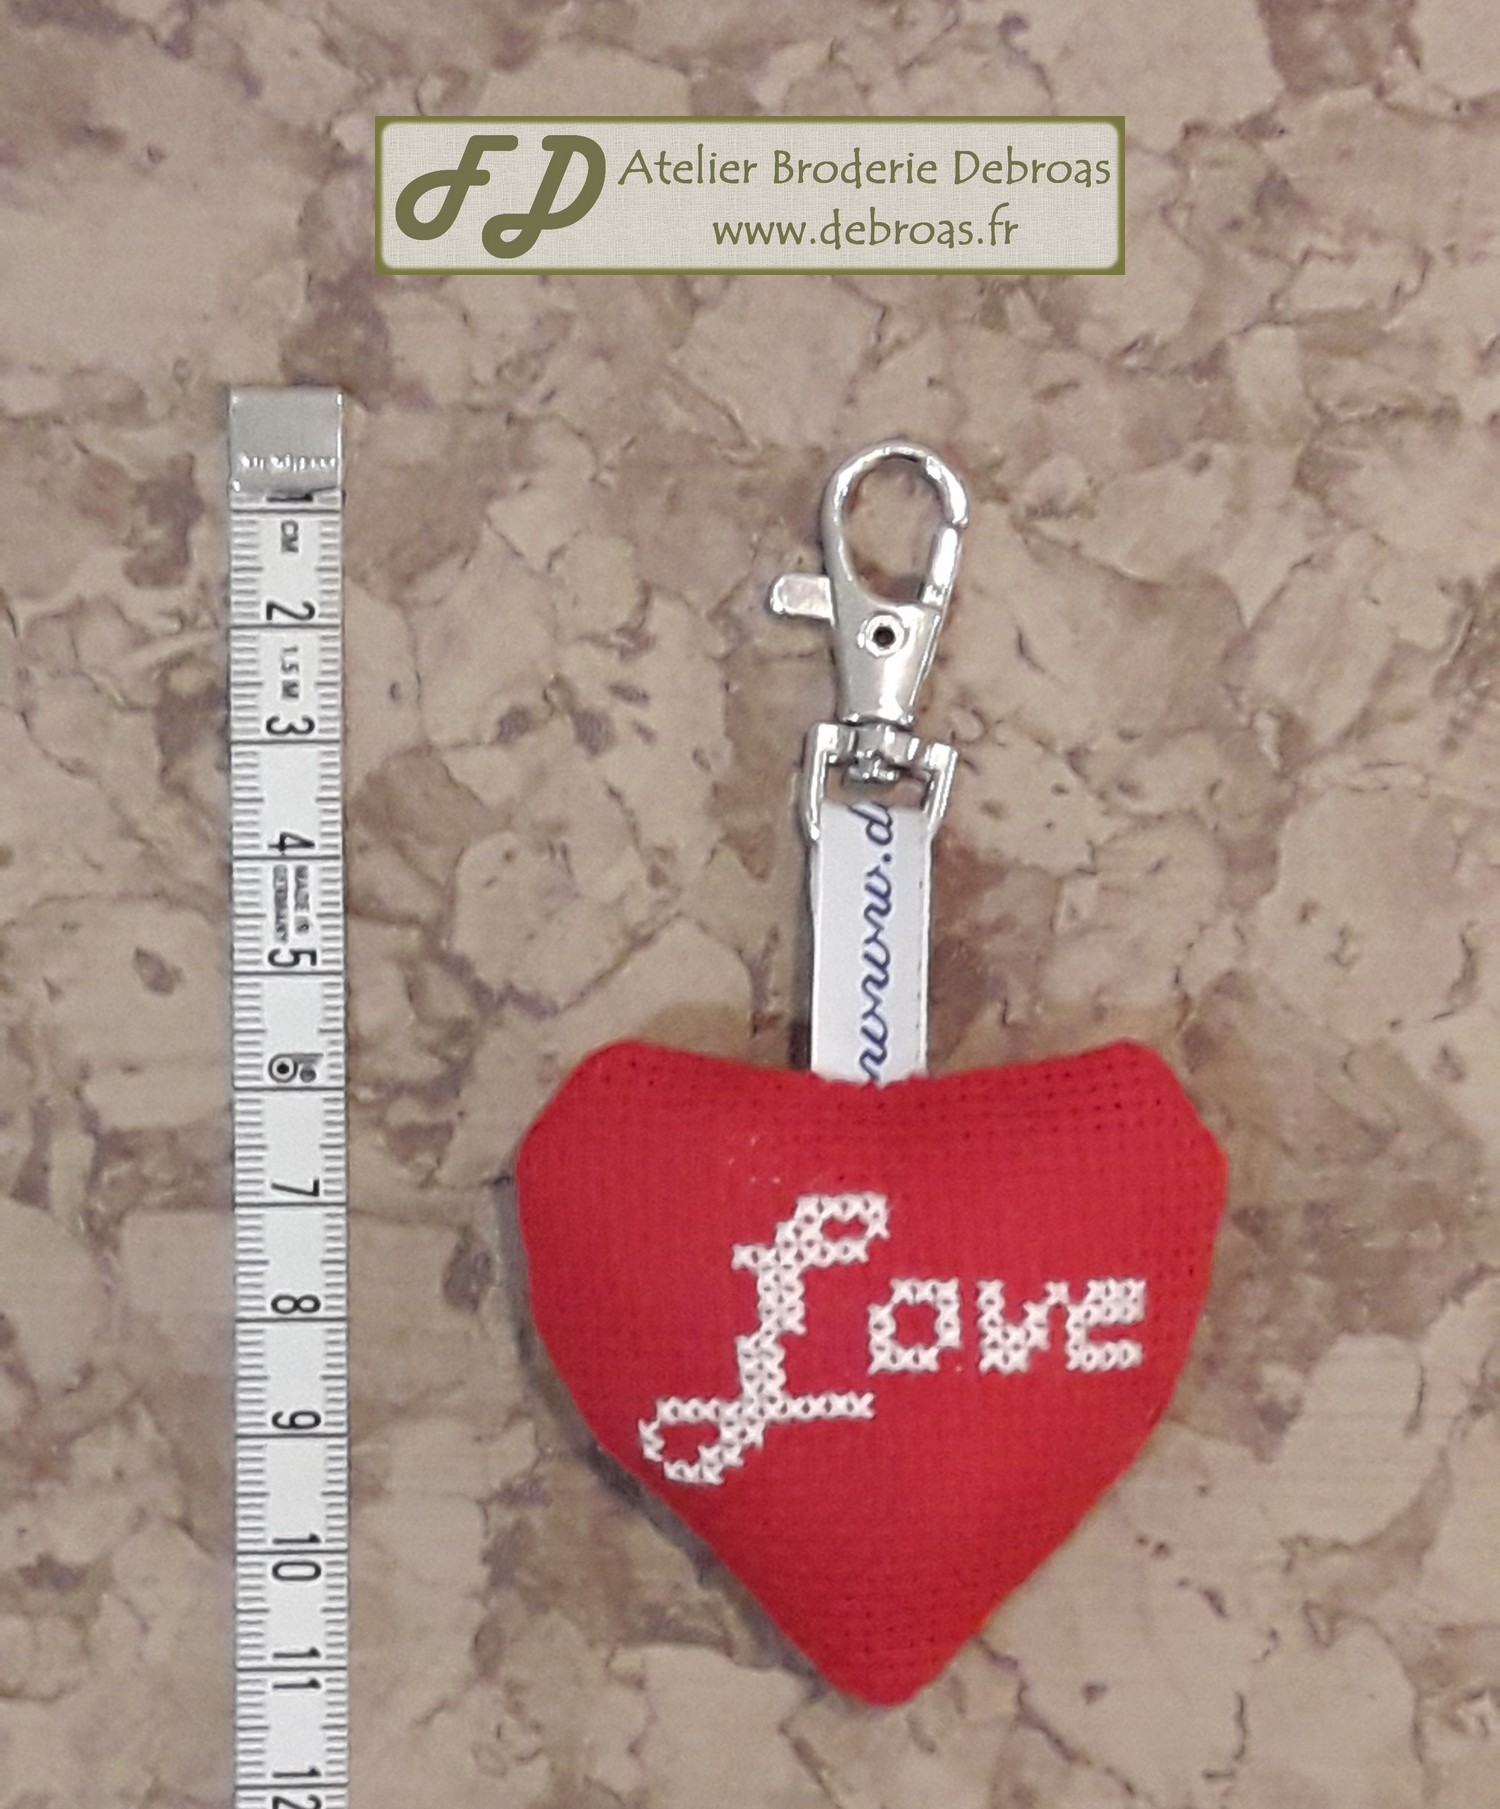 Pco55lovouarouge petit coeur love ouate toile 55 rouge